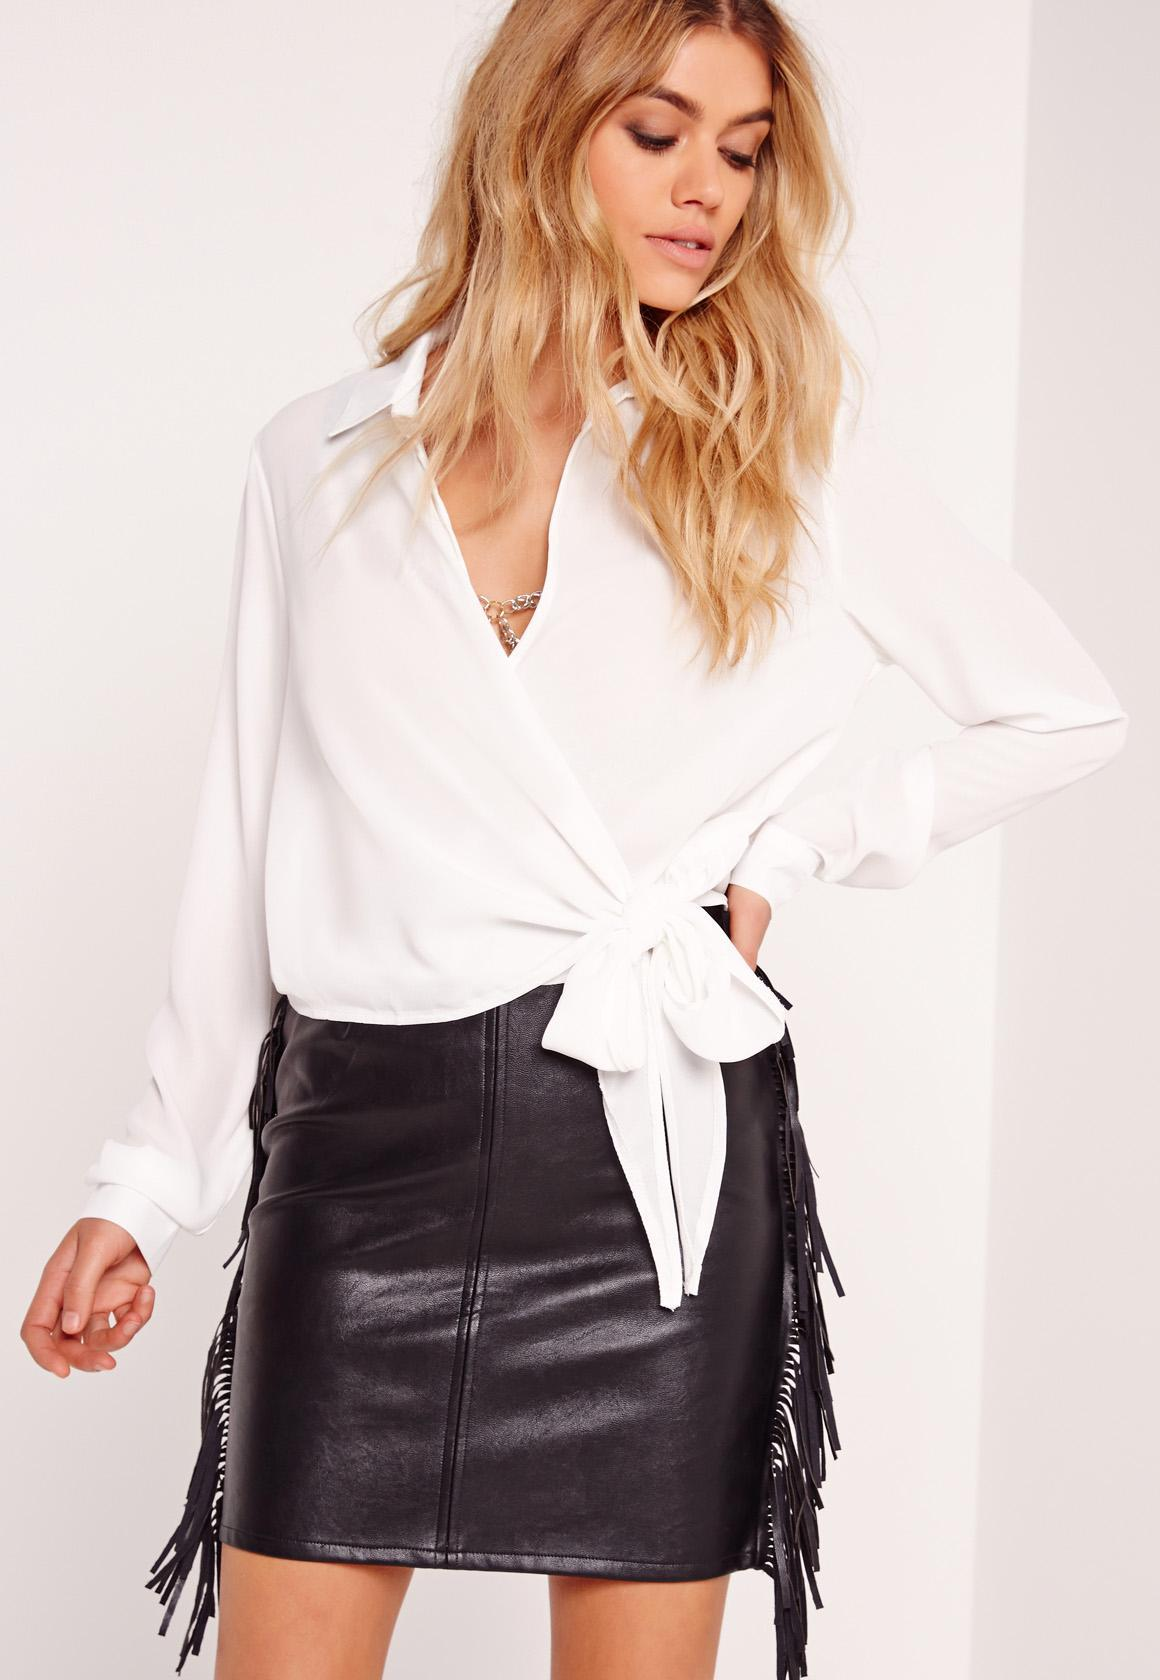 b1d443215dbf6 Missguided - White Wrap Over Tie Side Blouse Ivory - Lyst. View fullscreen